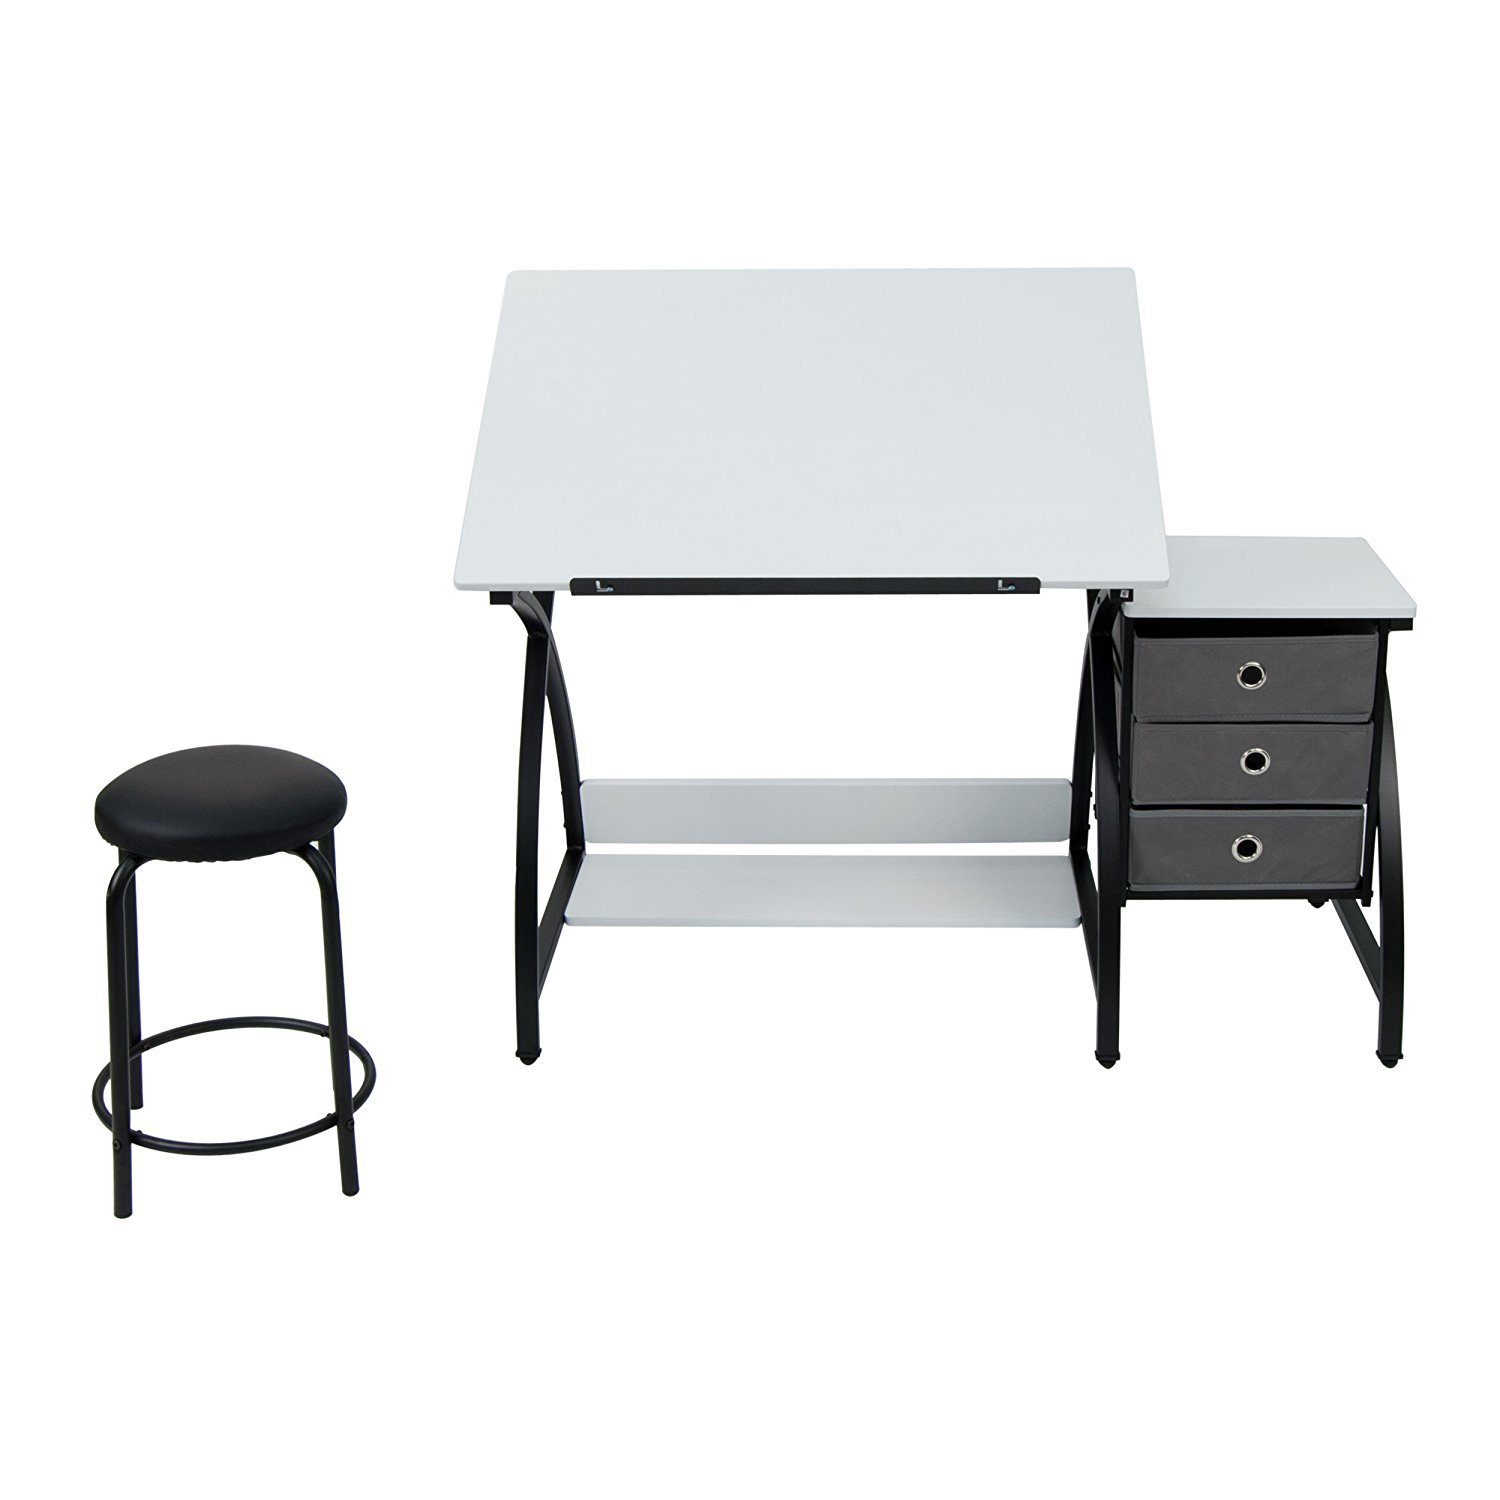 Studio Designs 13326 Comet Center with Stool, Black/White by SD STUDIO DESIGNS (Image #5)